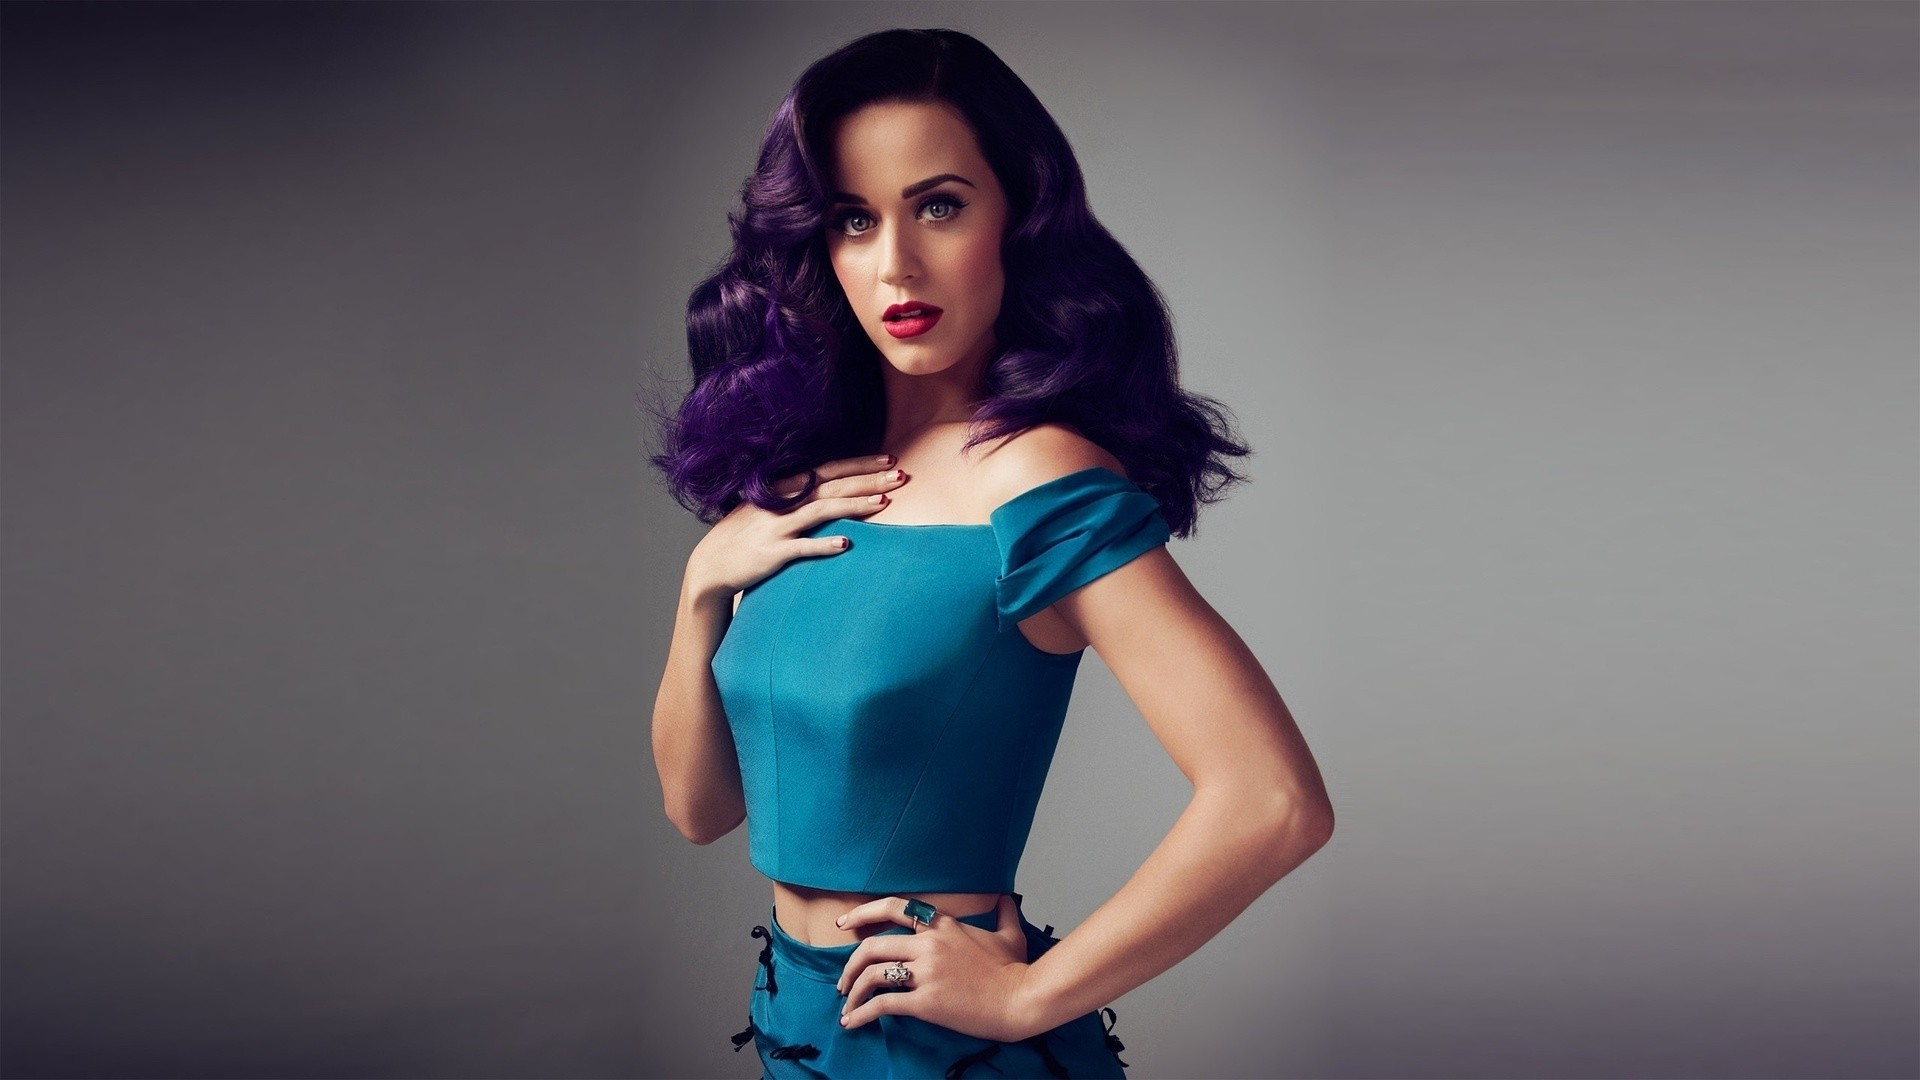 Katy Perry Wallpaper Picture hd